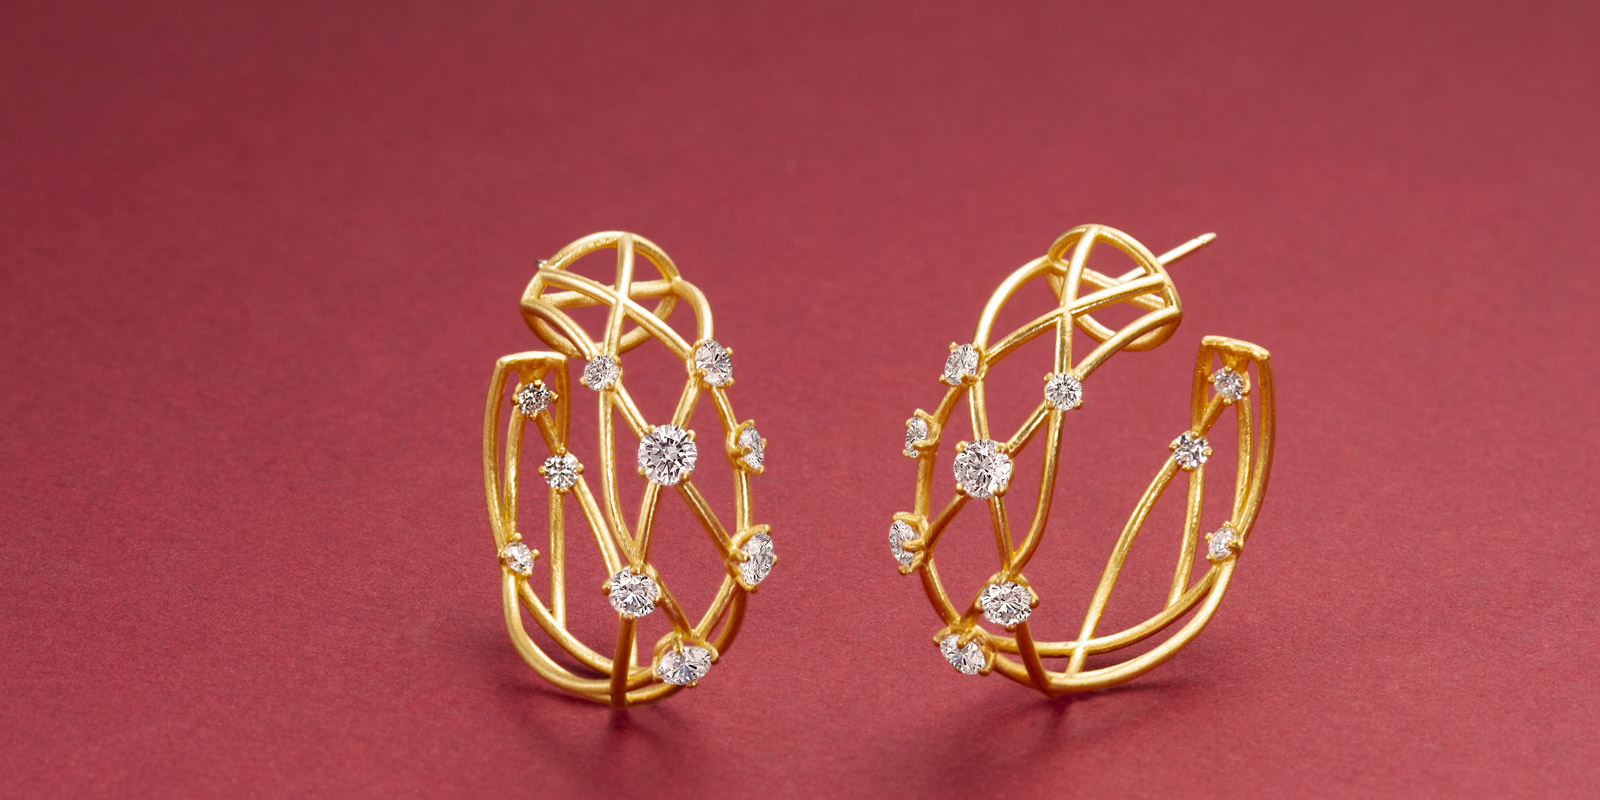 Judy hoops in 22 karat gold and diamonds